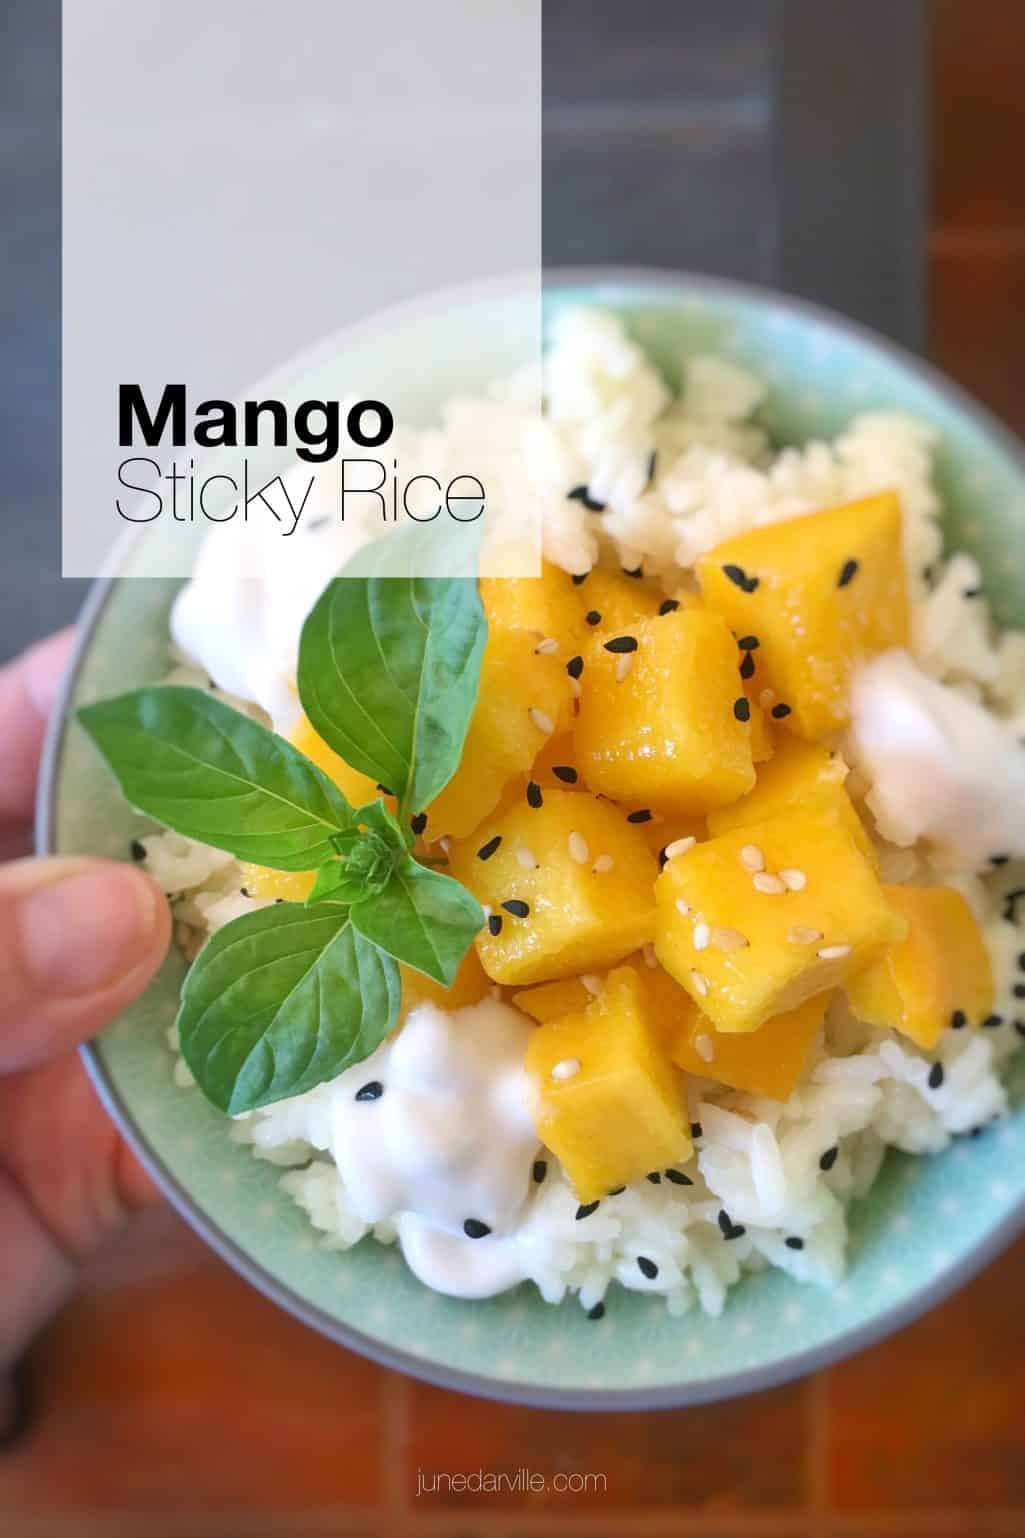 Mango Sticky Rice Thai Recipe | Simple. Tasty. Good.